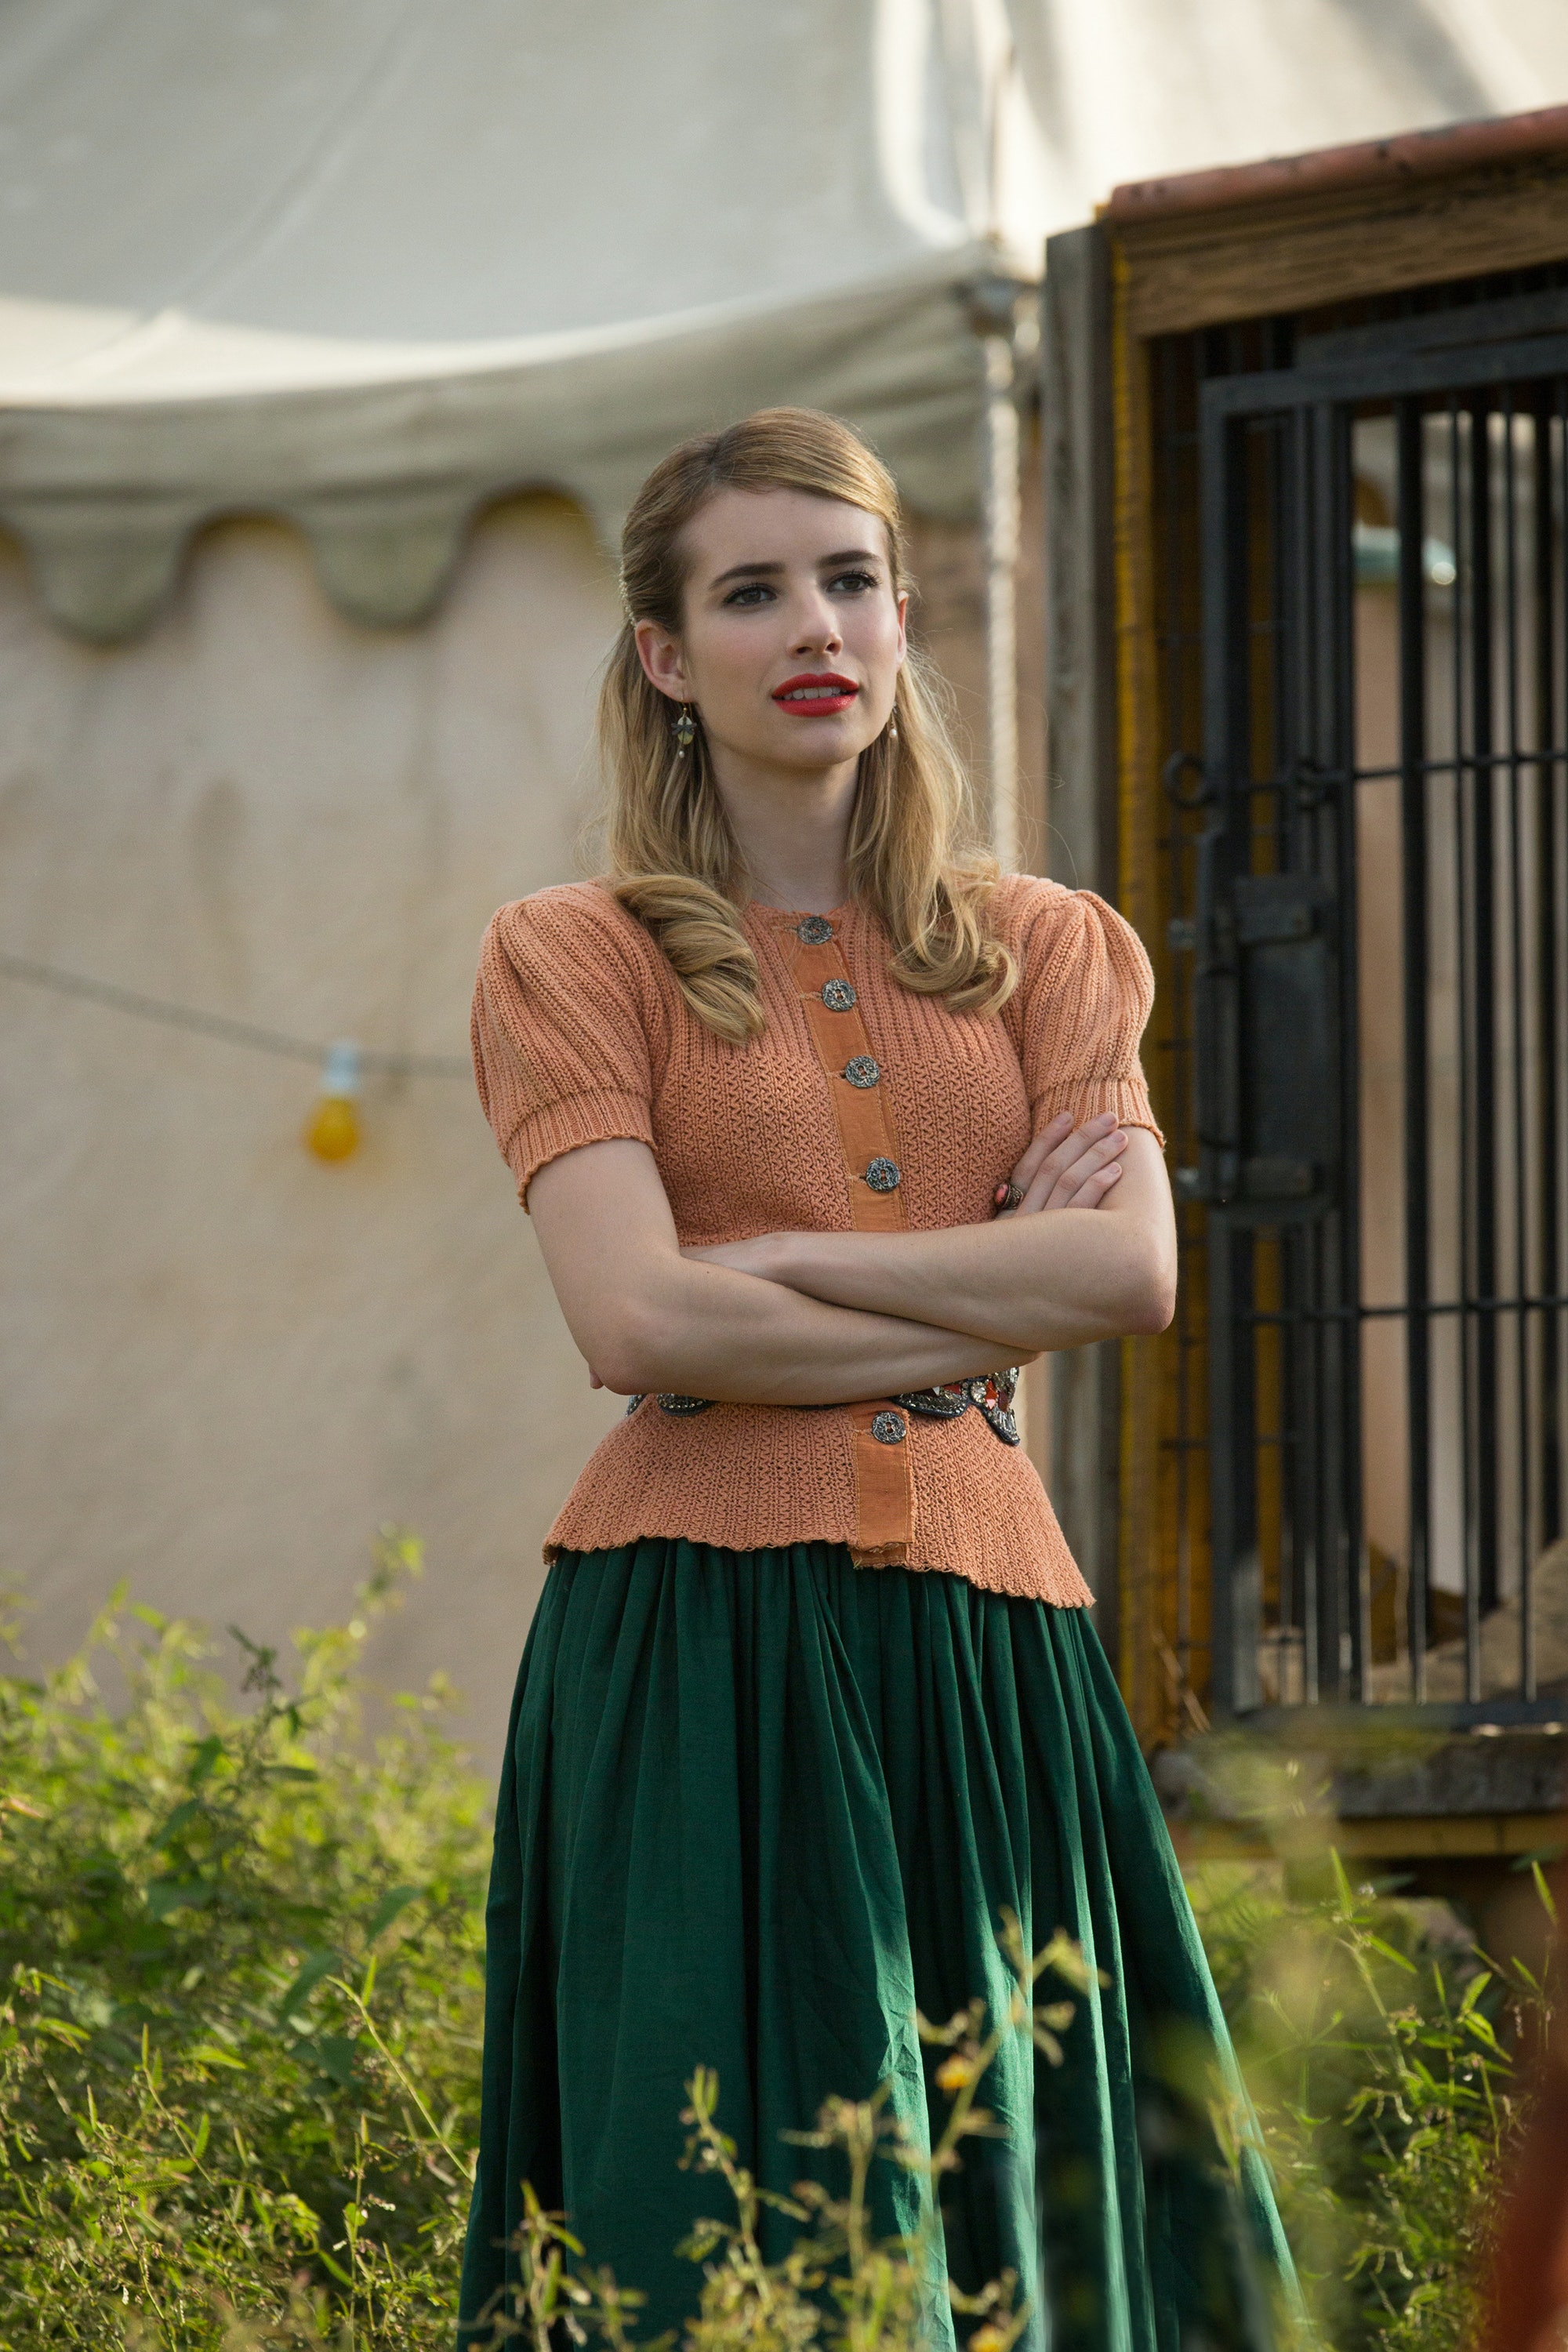 Will Emma Roberts Return For Ahs Season 5 4 Reasons Why Her New Show Is A Better Fit